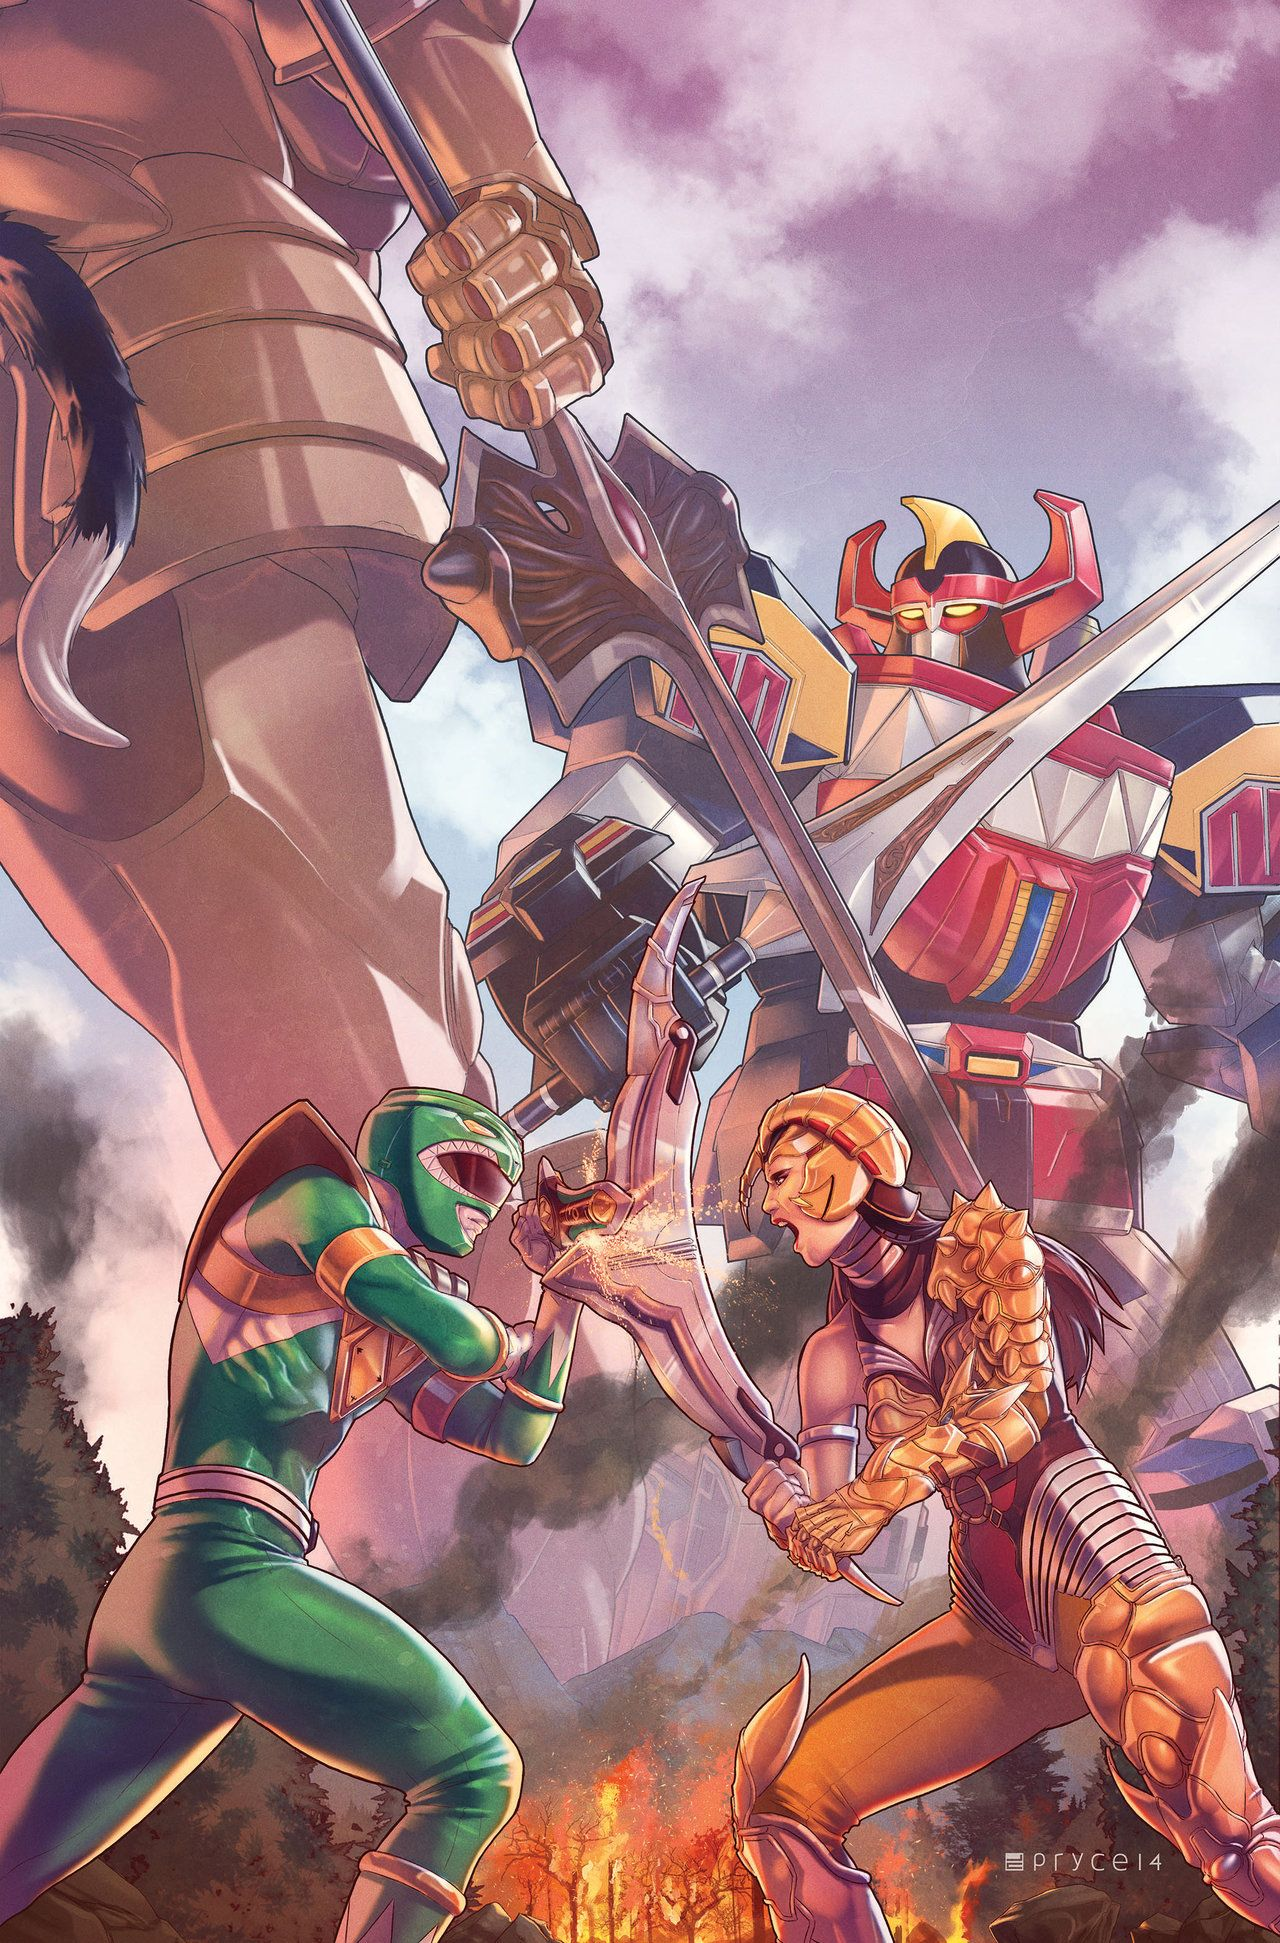 Mighty Morphin Power Rangers #2 by Pryce14 on DeviantArt